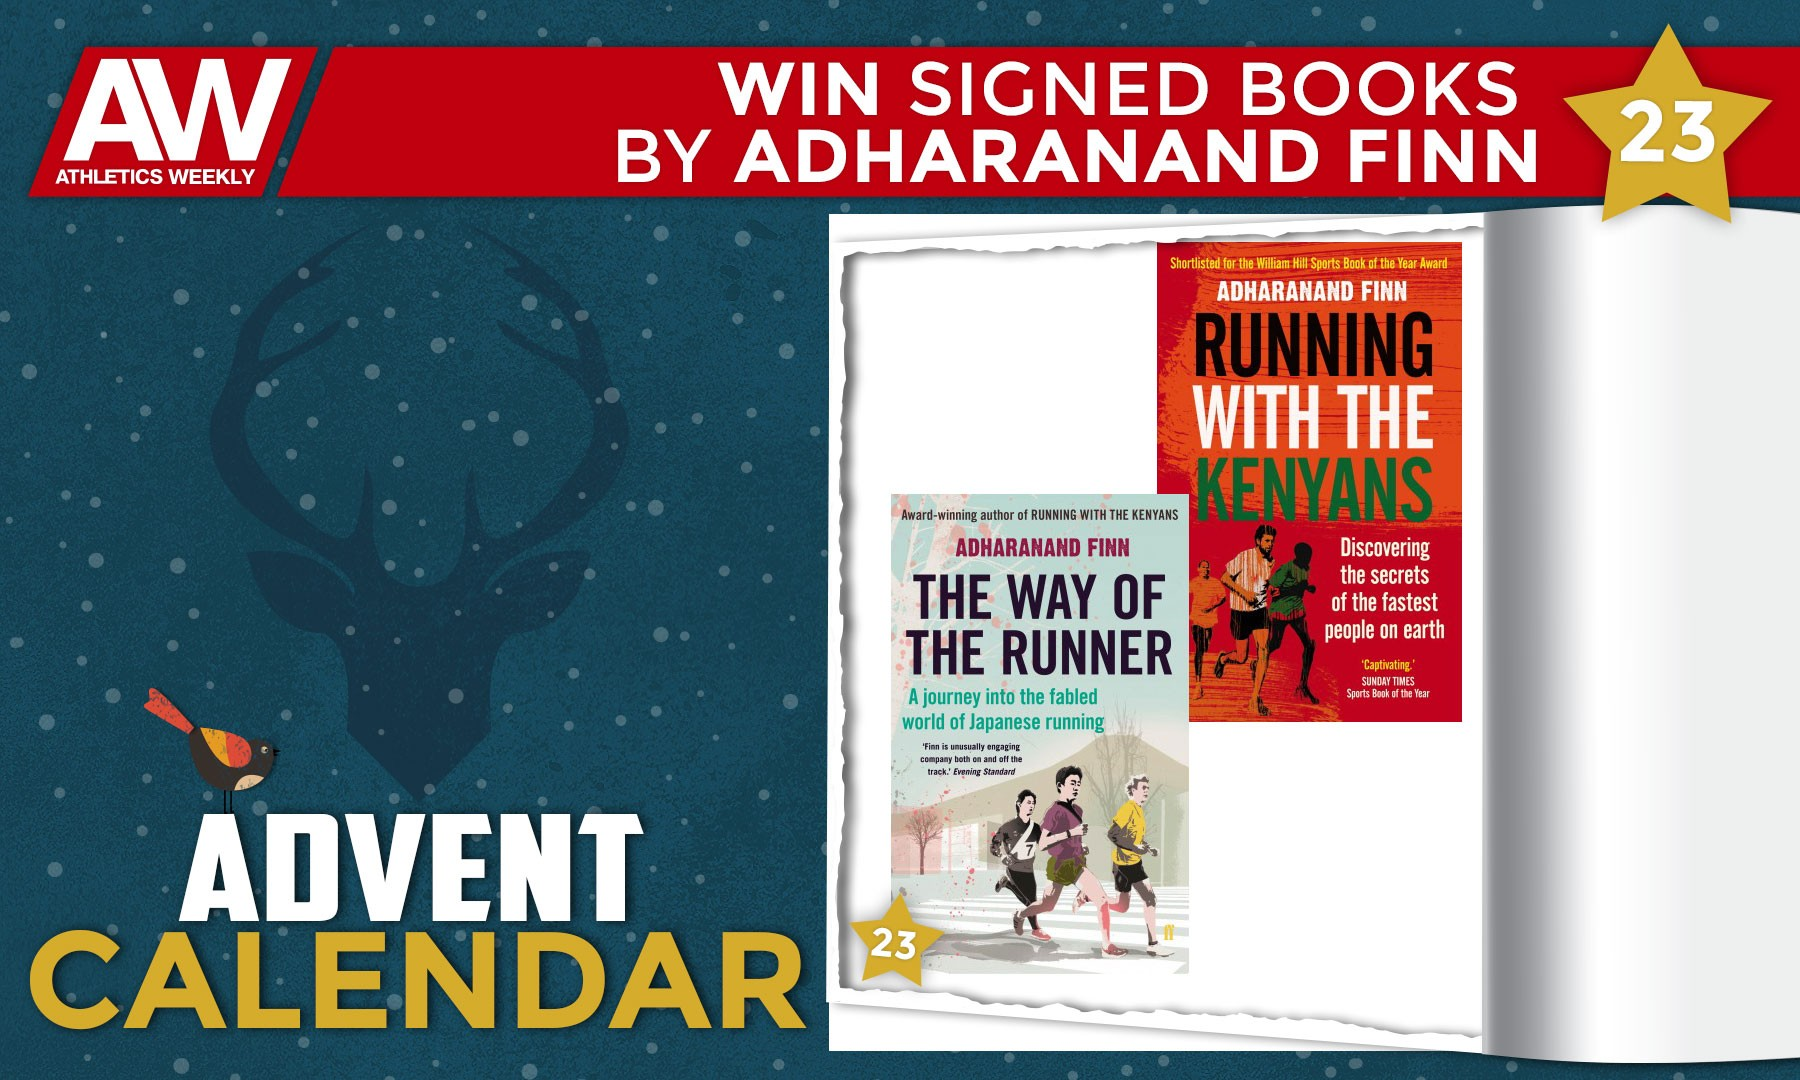 Win signed books by Adharanand Finn